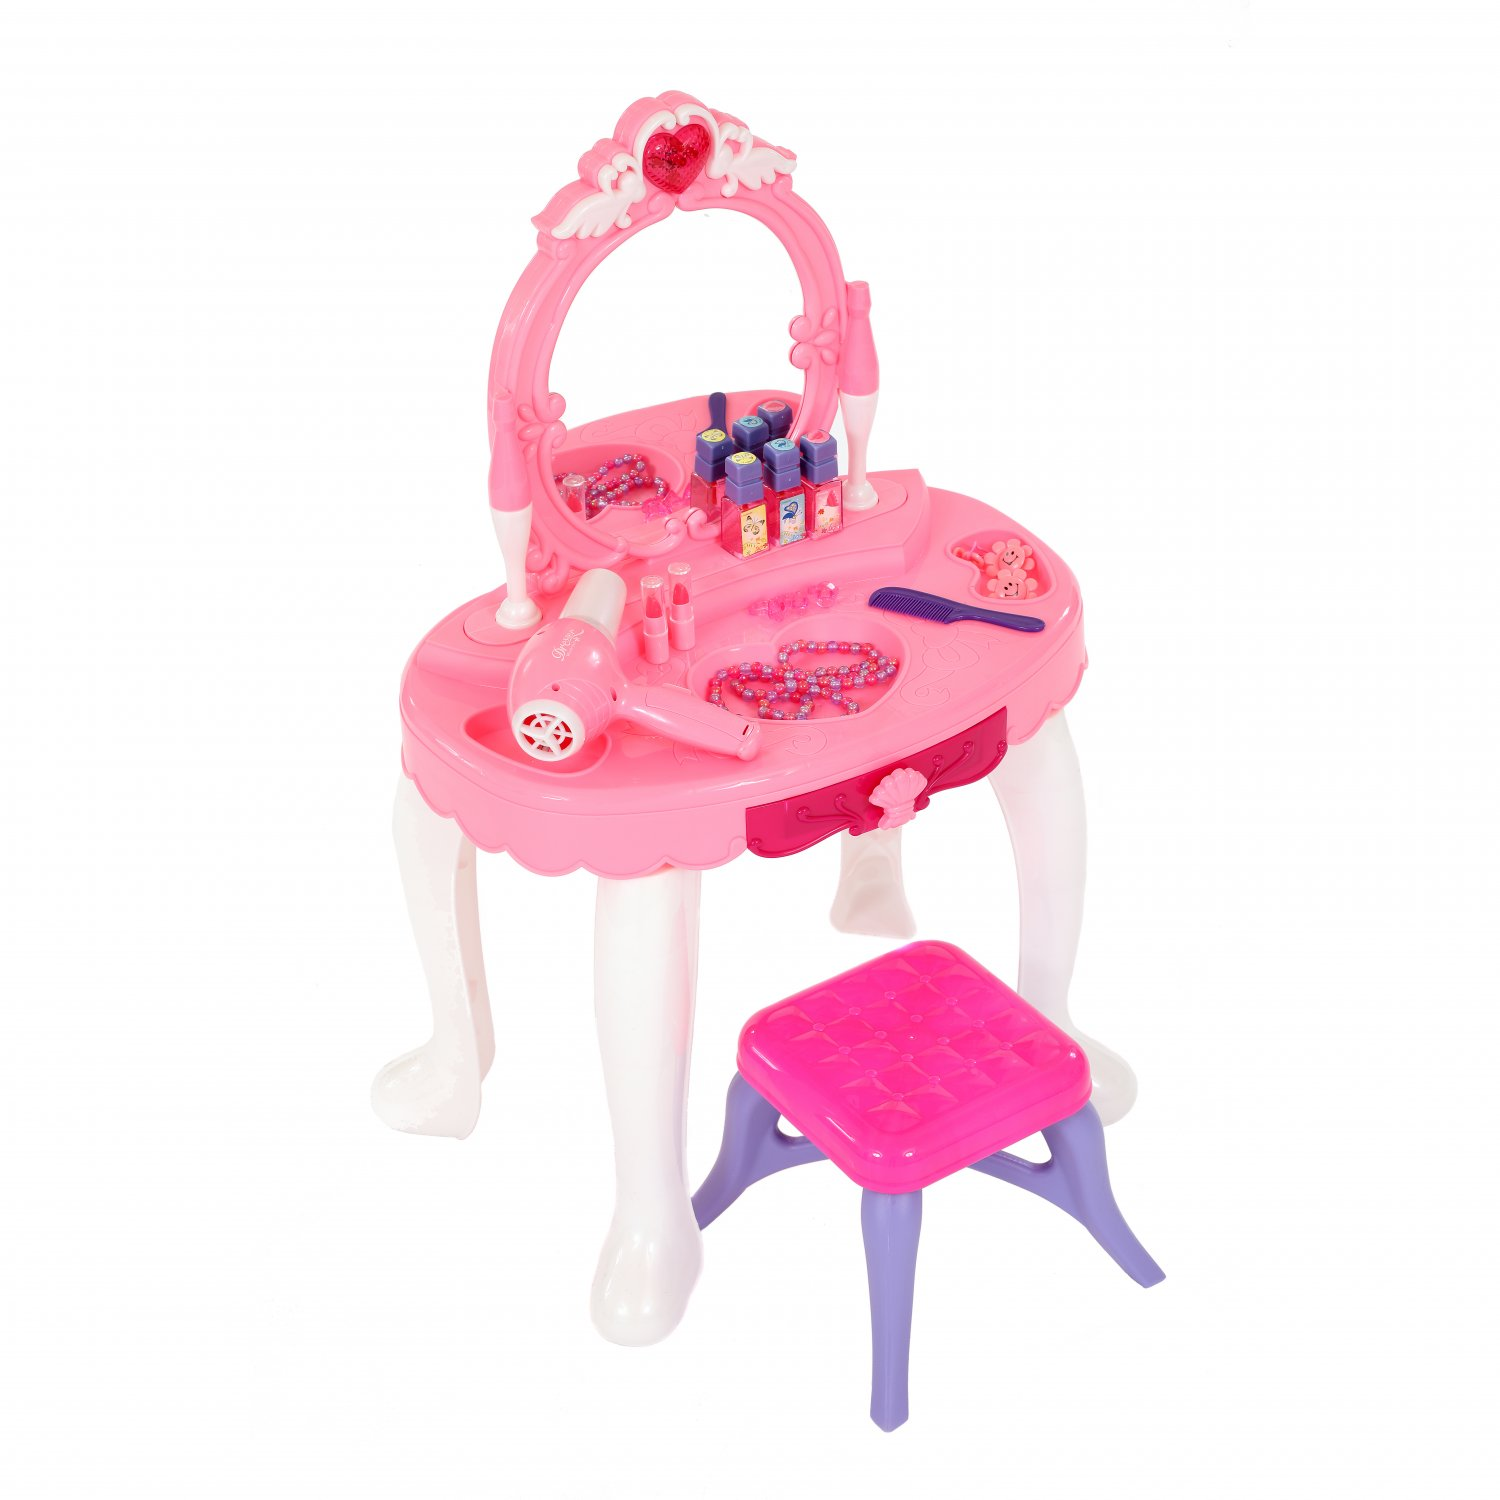 Childrens Kids Girls Play Toy Dressing Table Glamour Mirror